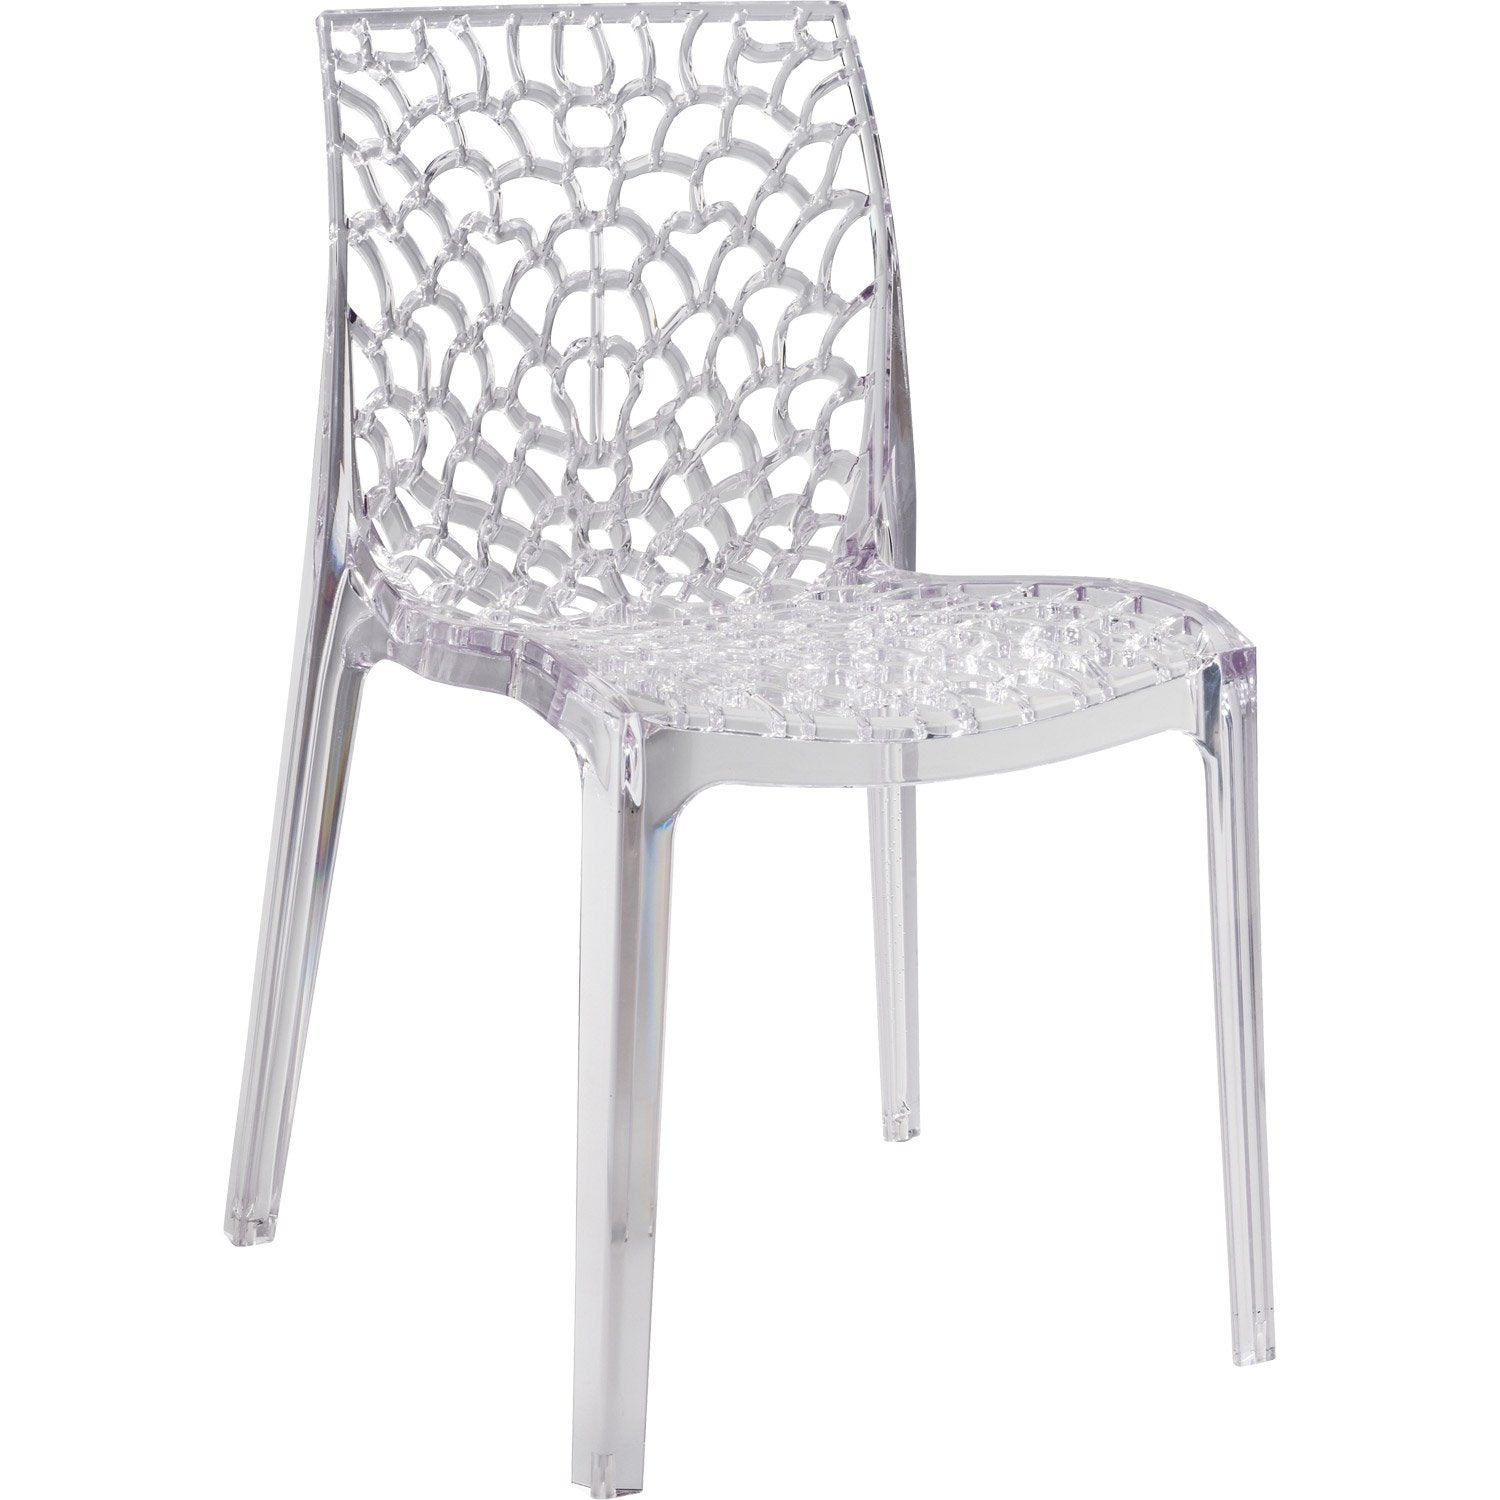 Chaise de jardin en polycarbonate grafik lux transparent for Chaise en couleur pas cher